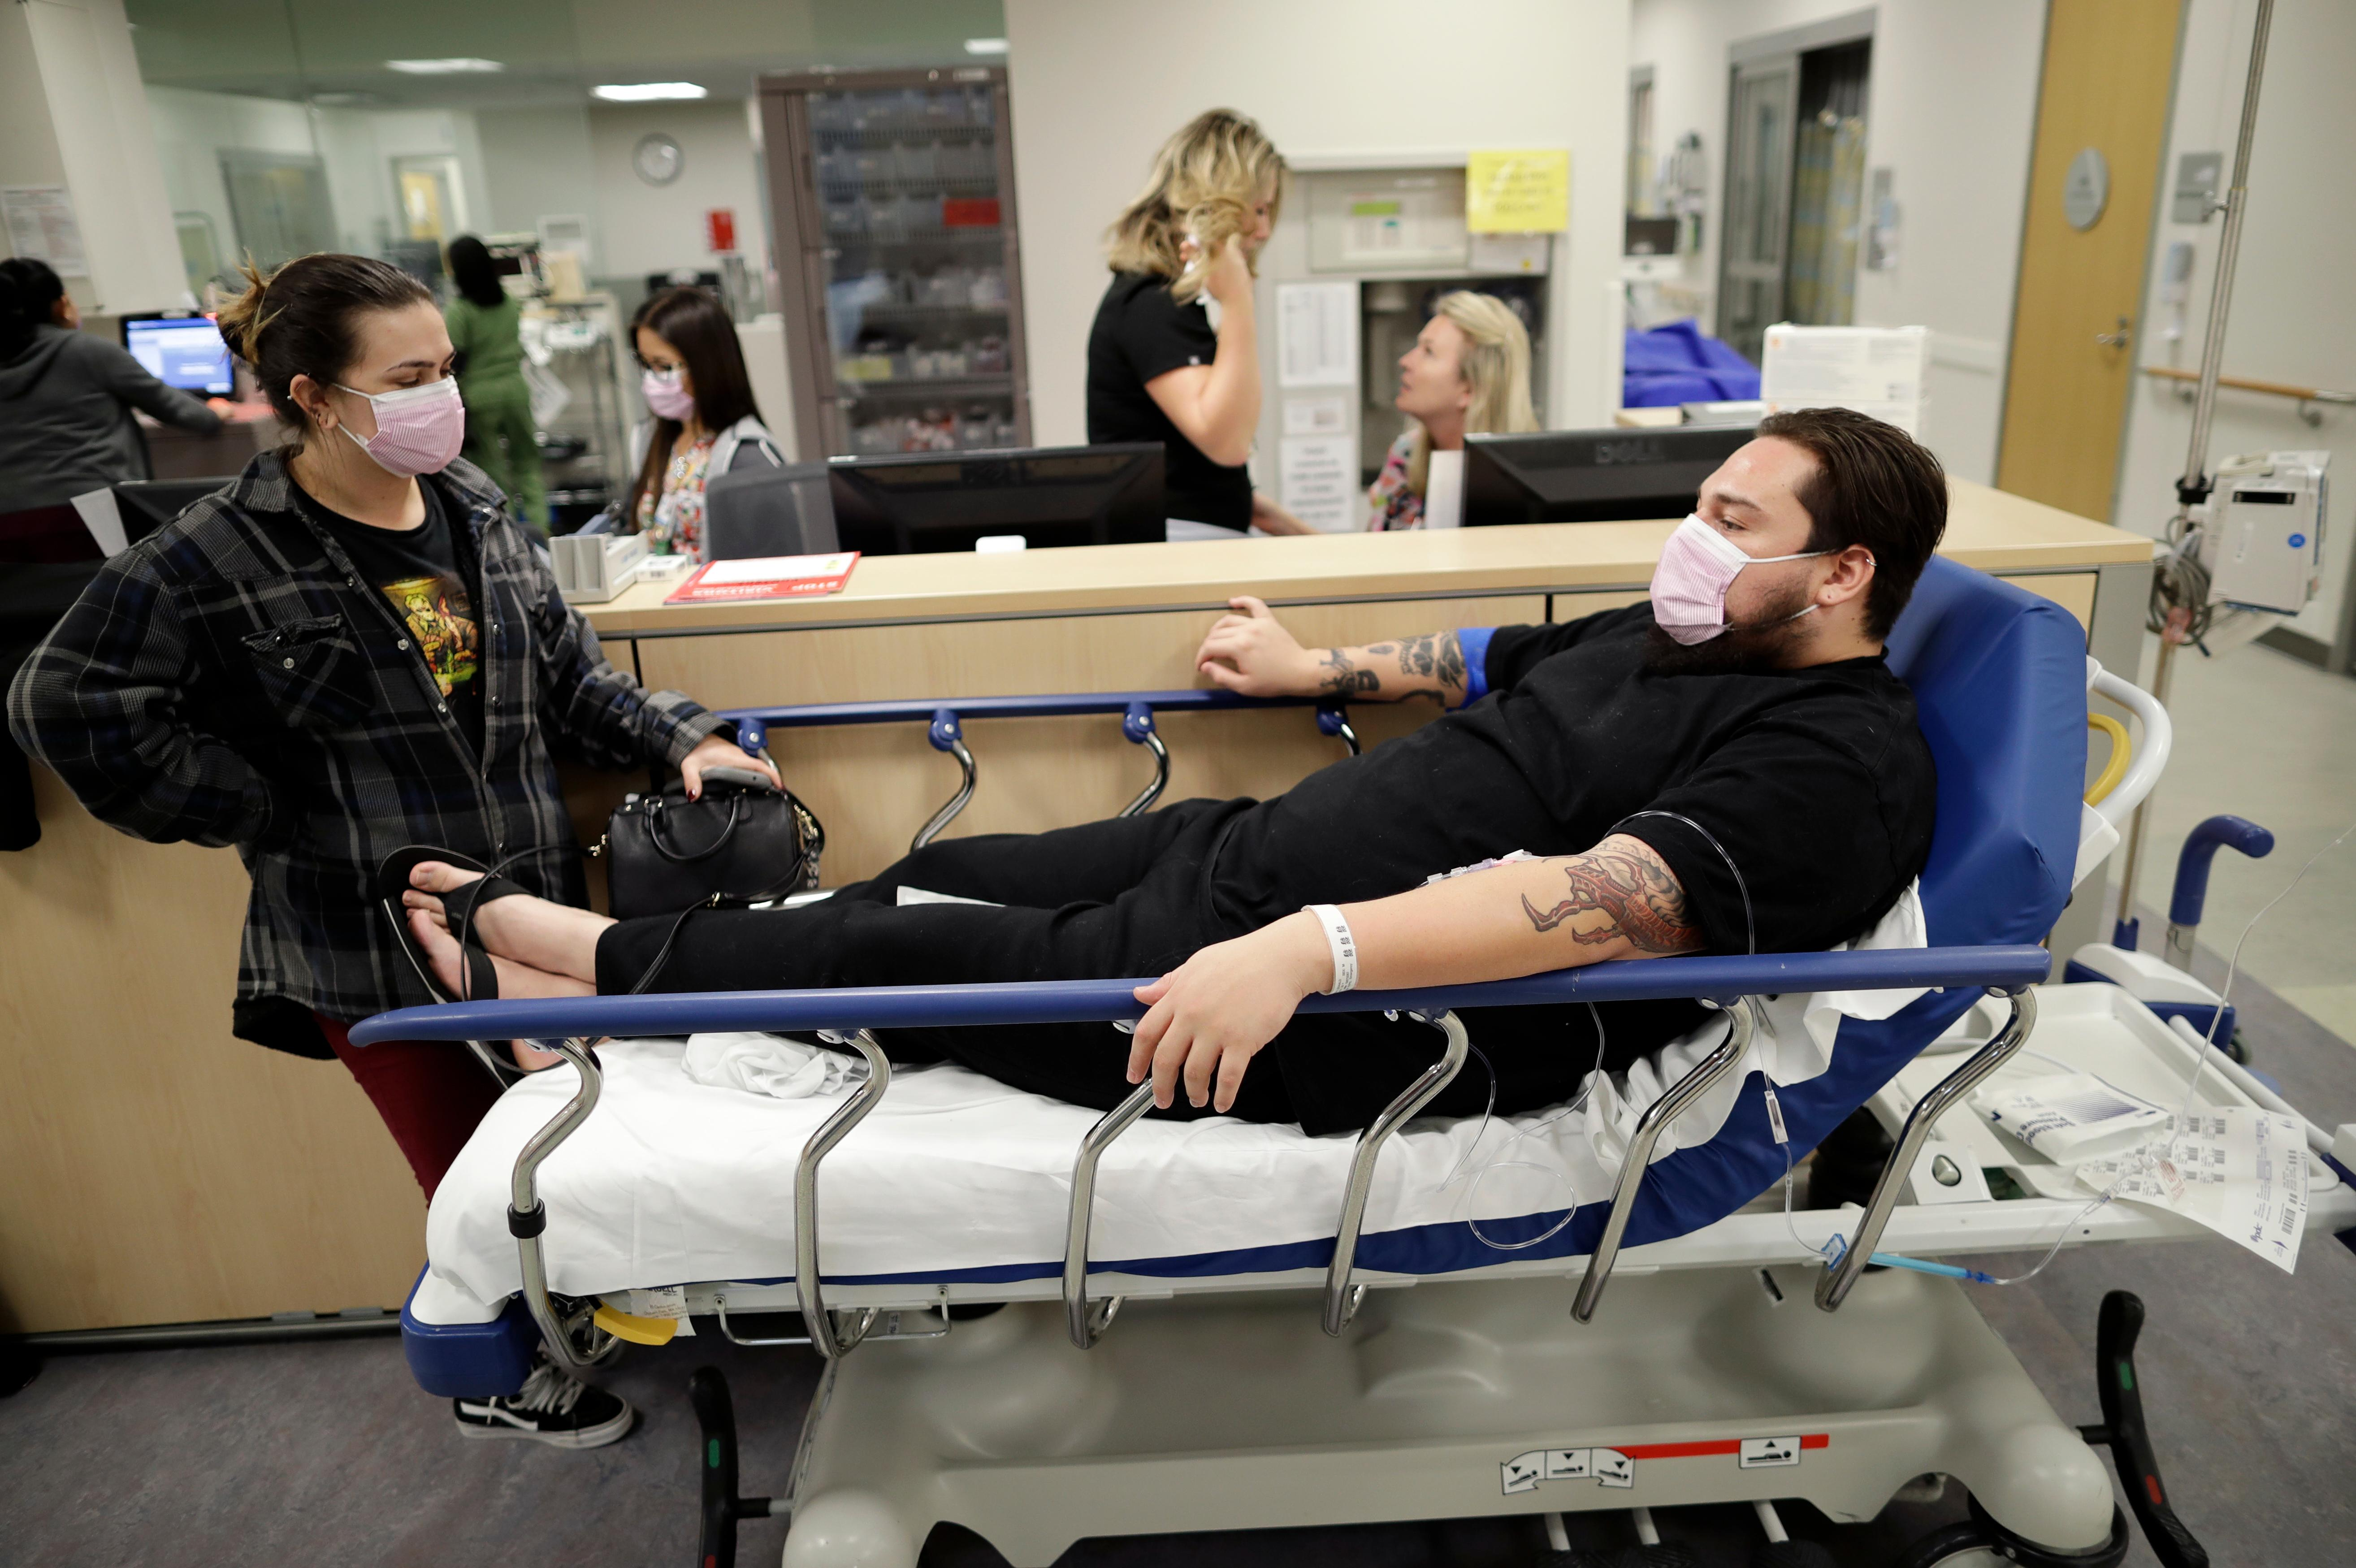 Donnie Cardenas, right, waits in an emergency room hallway alongside roommate Torrey Jewett, left, as he recovers from the flu at the Palomar Medical Center in Escondido, Calif., on Wednesday, Jan. 10, 2018. The San Diego County resident said he was battling a heavy cough for days before a spike his temperature sent him into the emergency room. (AP Photo/Gregory Bull)